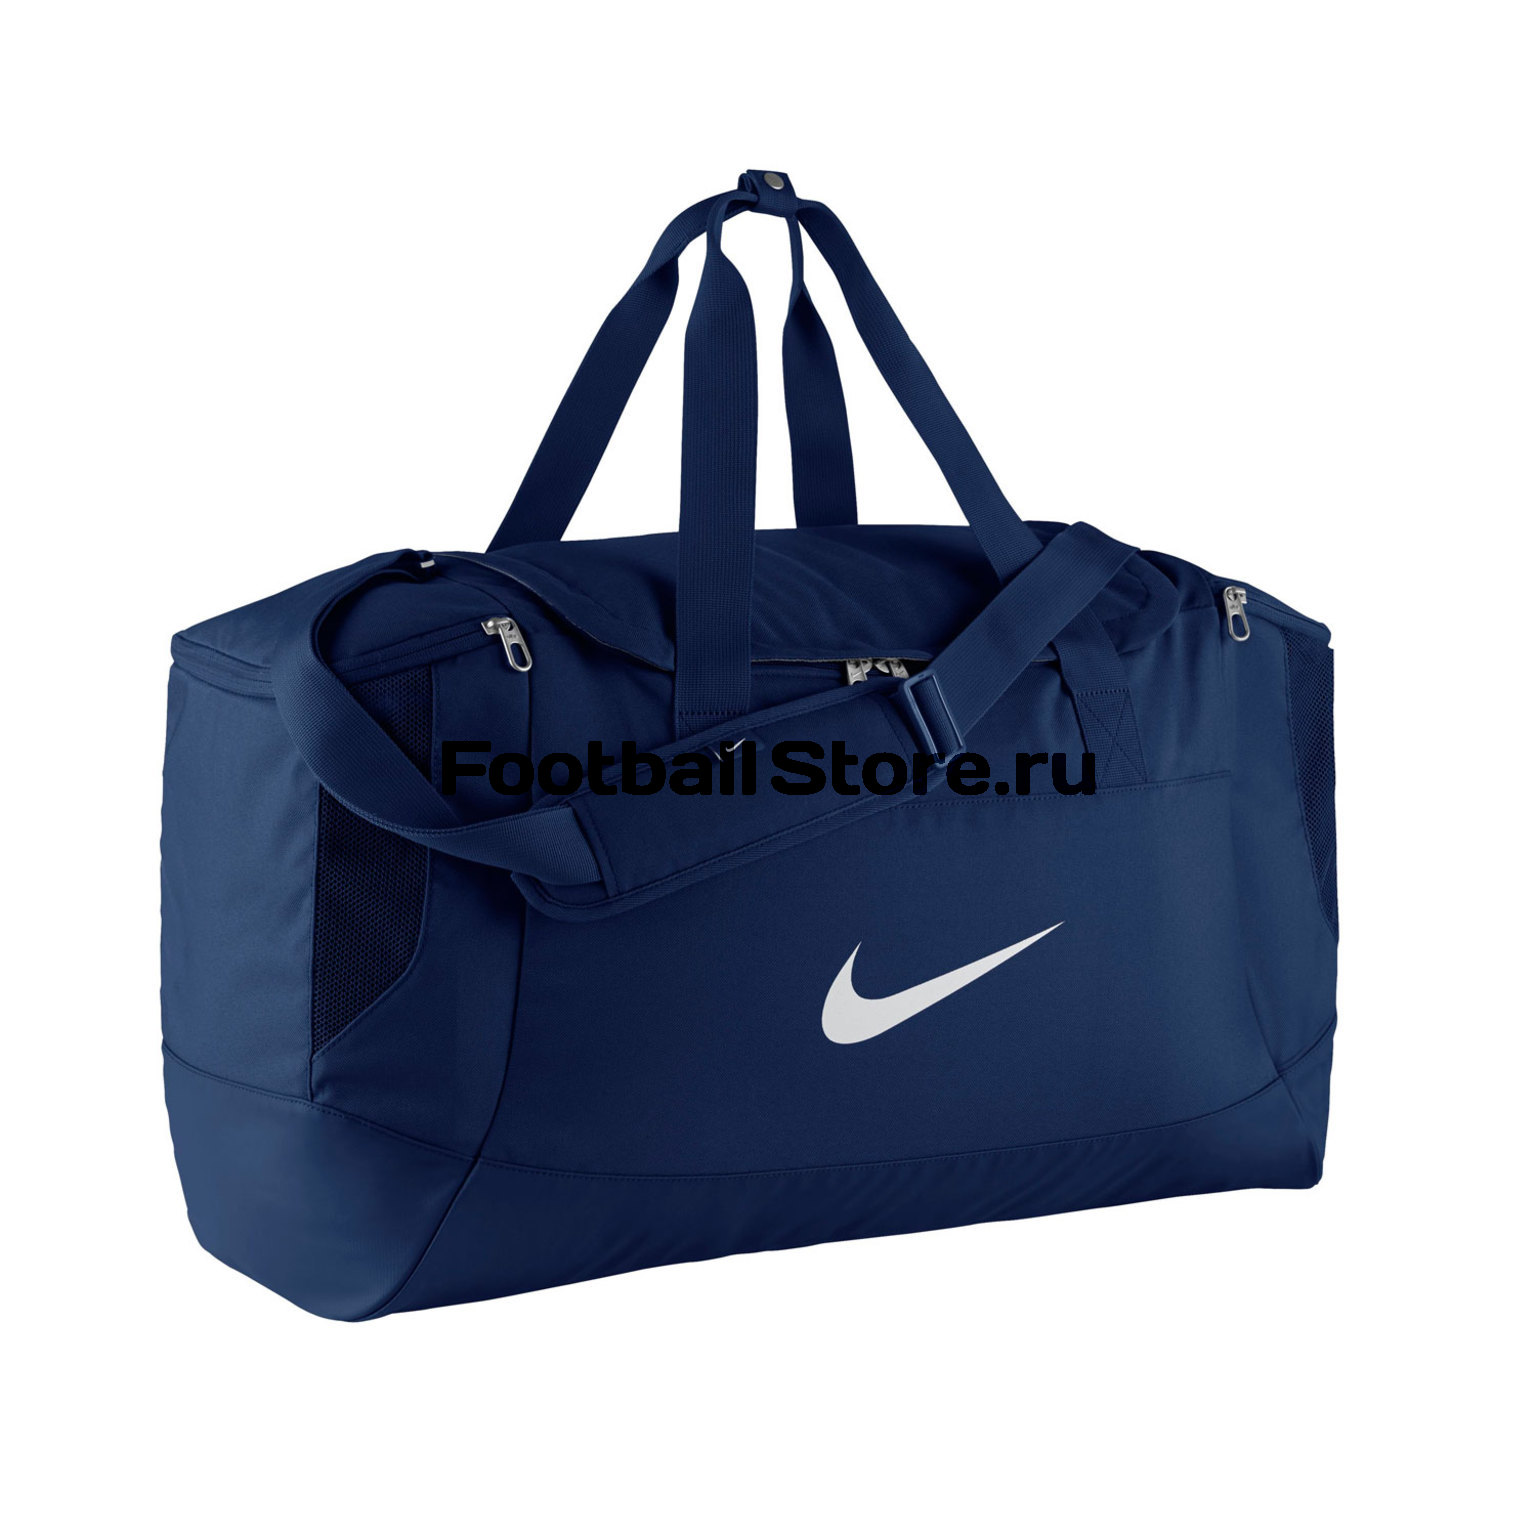 Сумки/Рюкзаки Nike Сумка Nike Club Team Swoosh Duff L BA5192-410 nike nike club team swoosh backpack